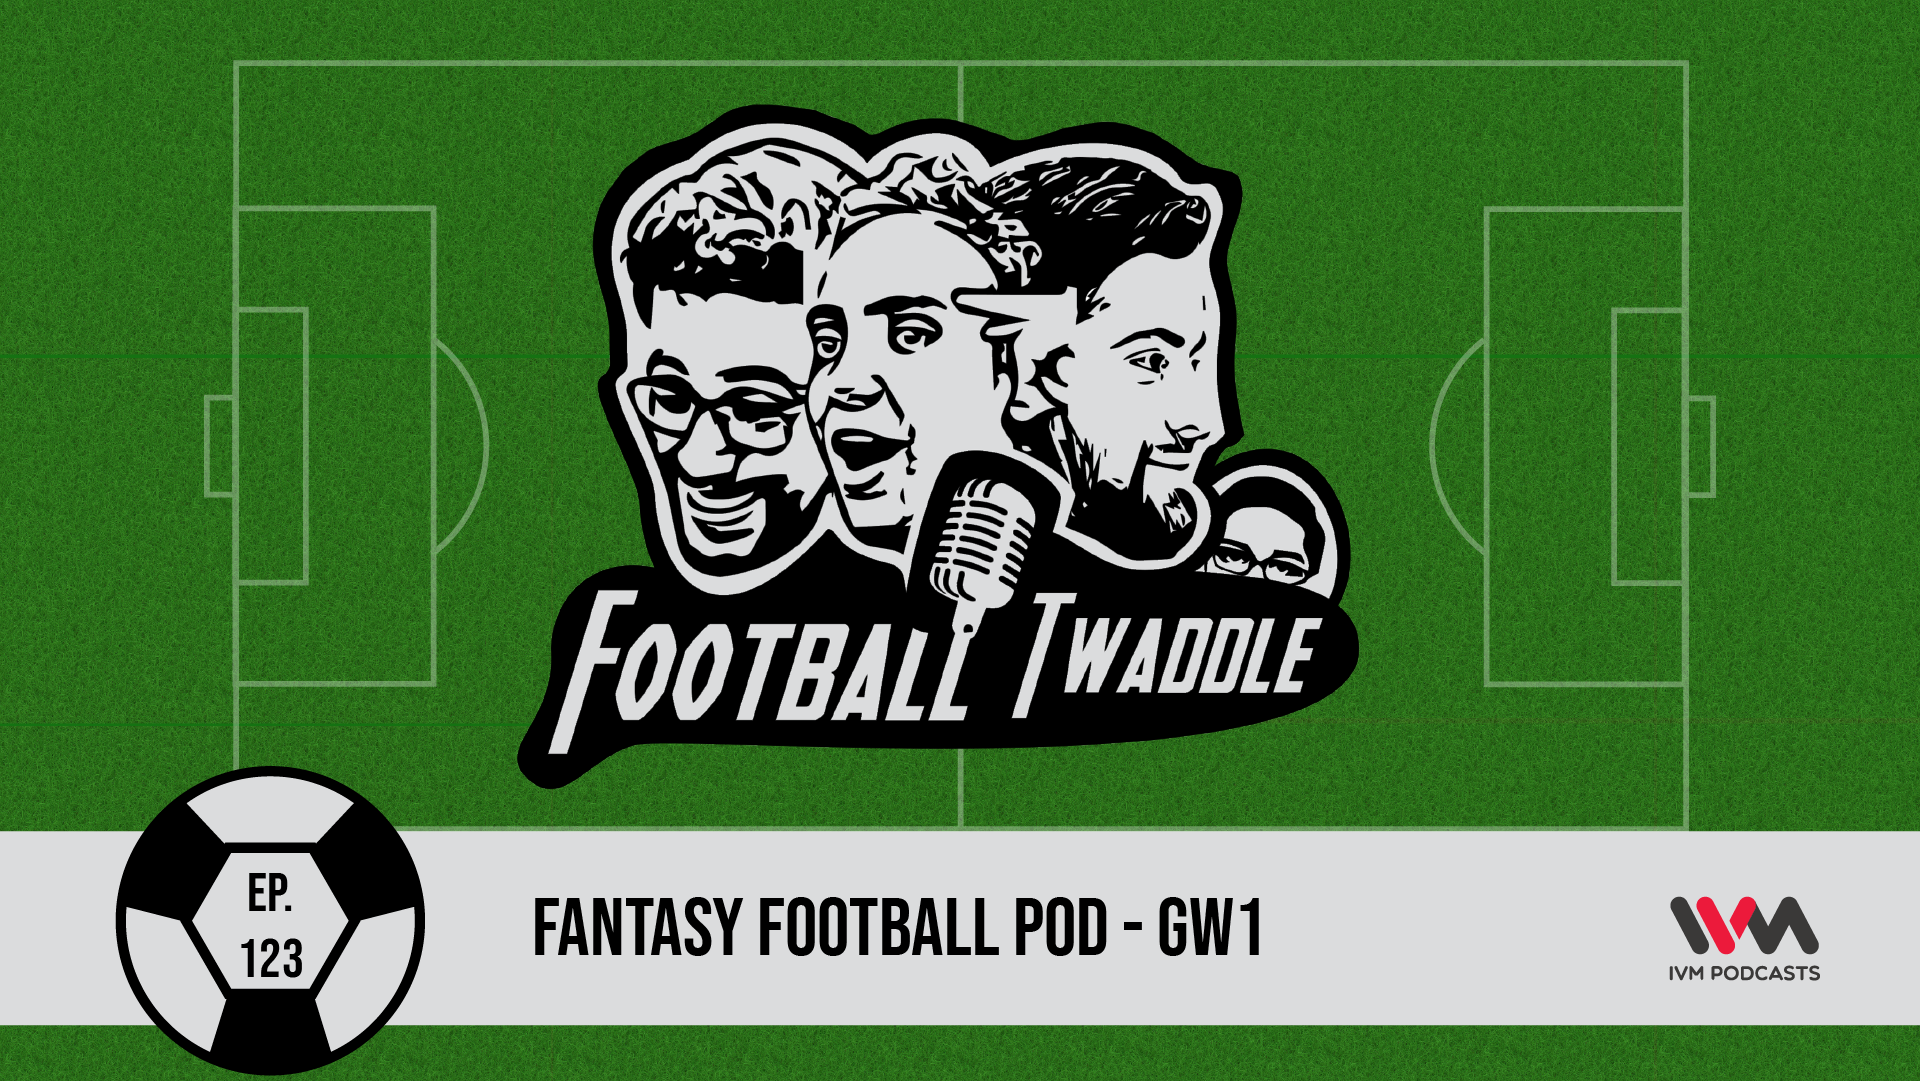 FootballTwaddleEpisode123.png